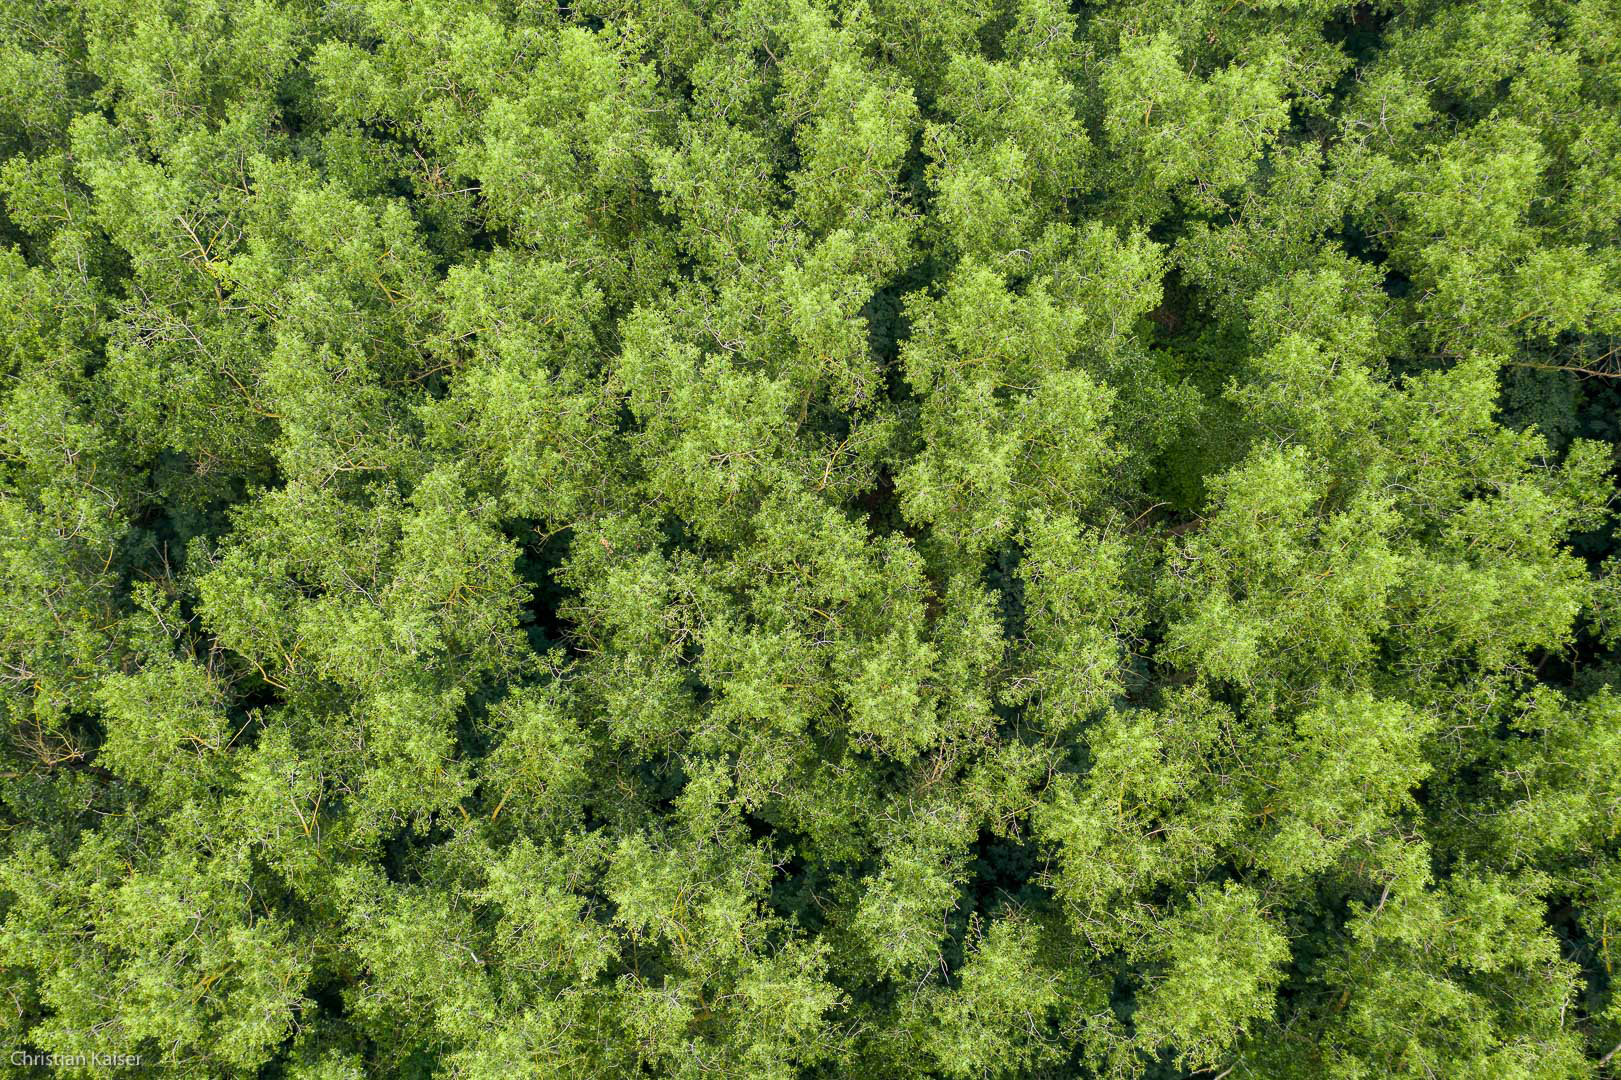 a view from above on the roof of the green leaves of the forest